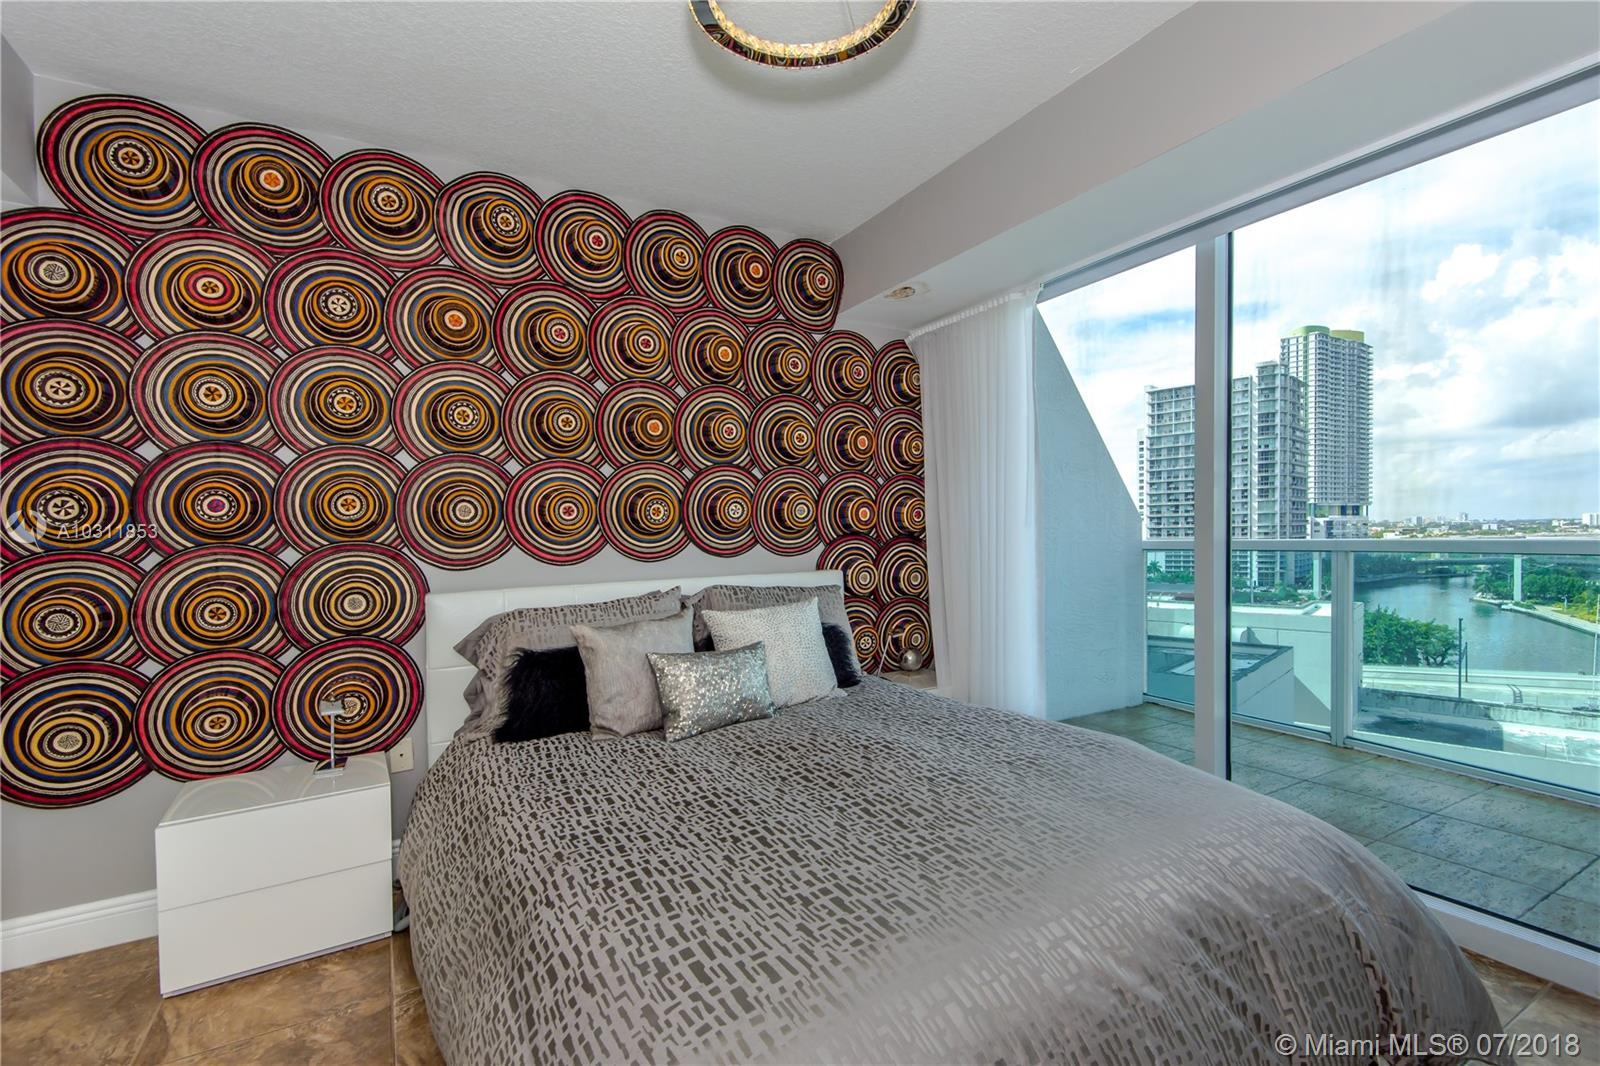 41 SE 5th Street, Miami, FL 33131-2504, Brickell on the River South #717, Brickell, Miami A10311853 image #4